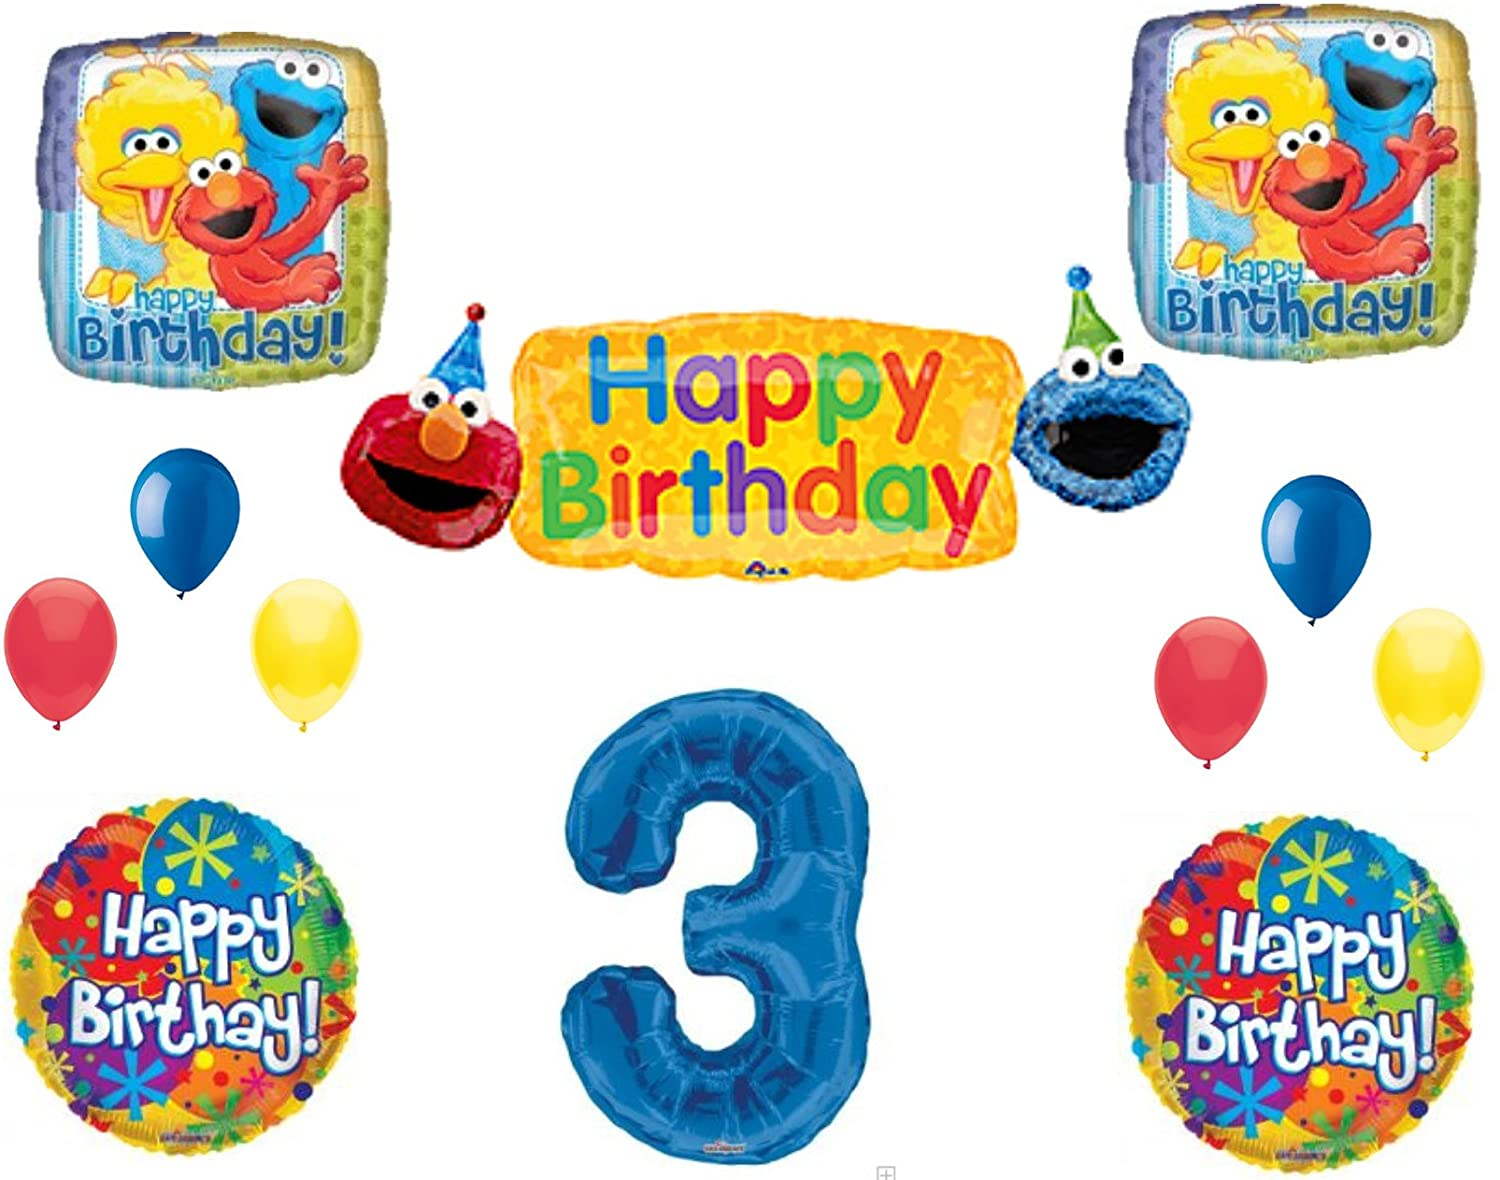 SESAME STREET 3rd Banner Happy Birthday Party Balloons Decoration Supplies Elmo Cookie Monster